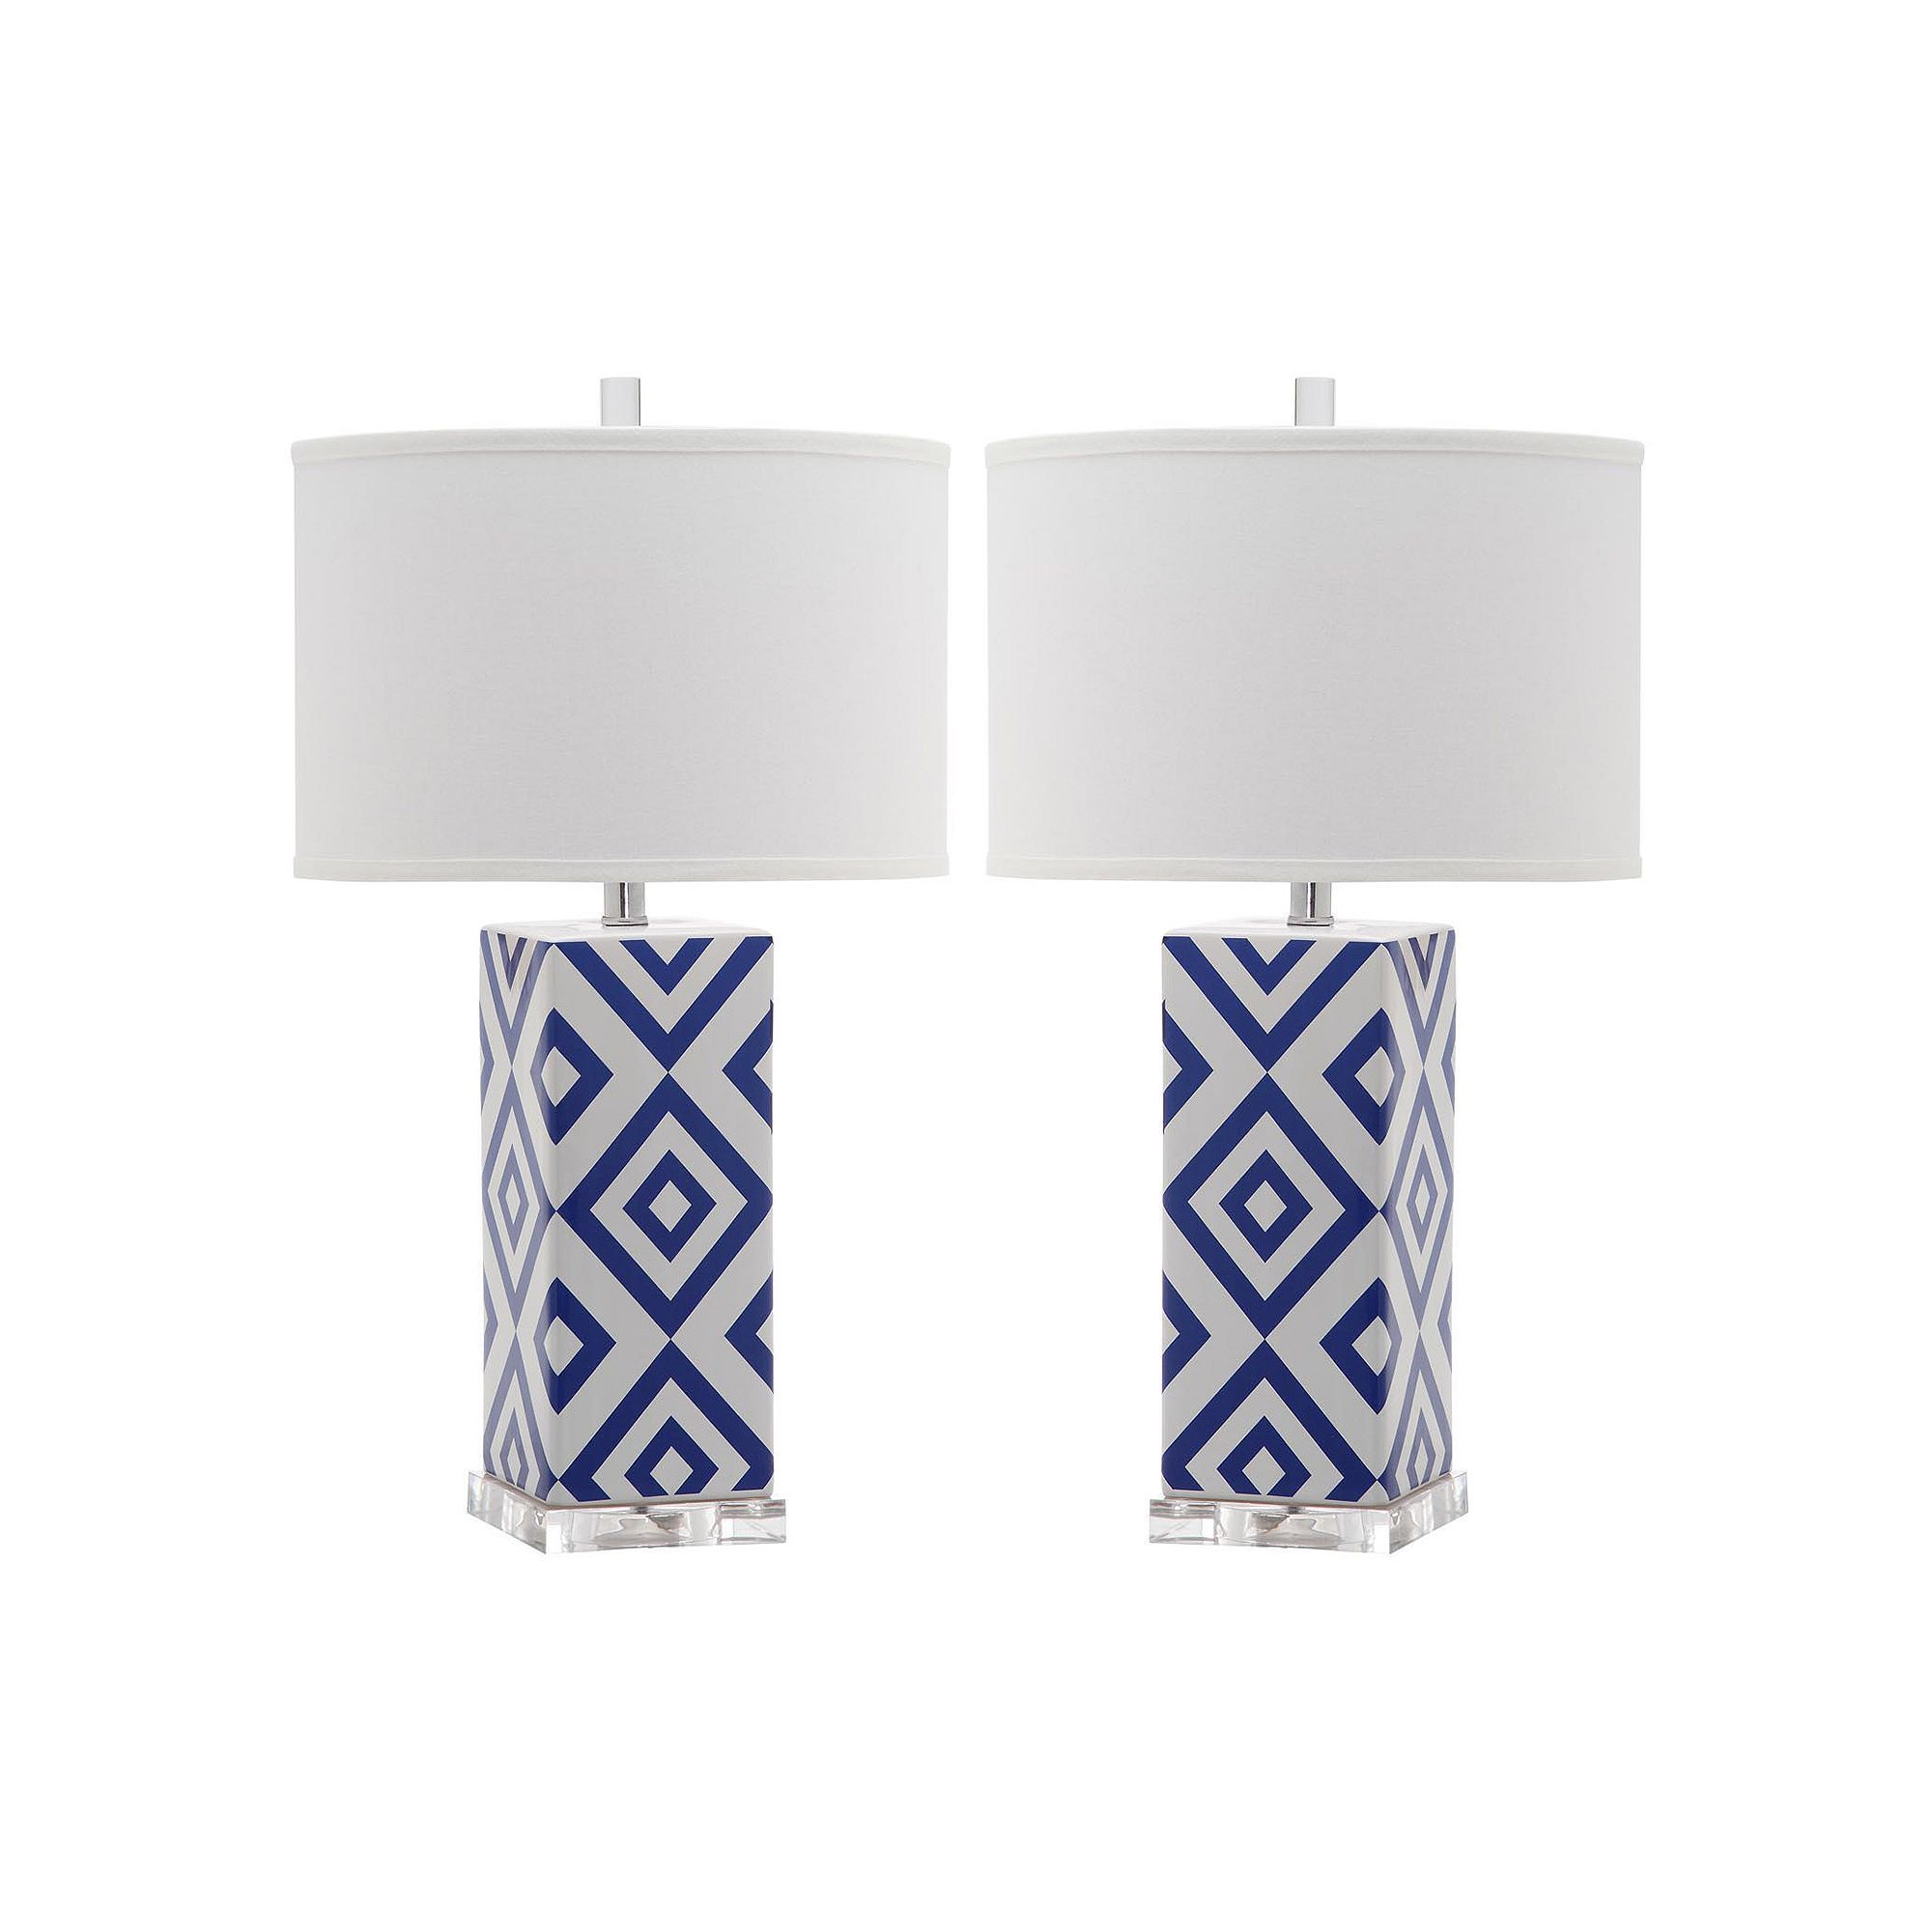 Safavieh 2 Piece Geometric Table Lamp Set, Blue (Navy)